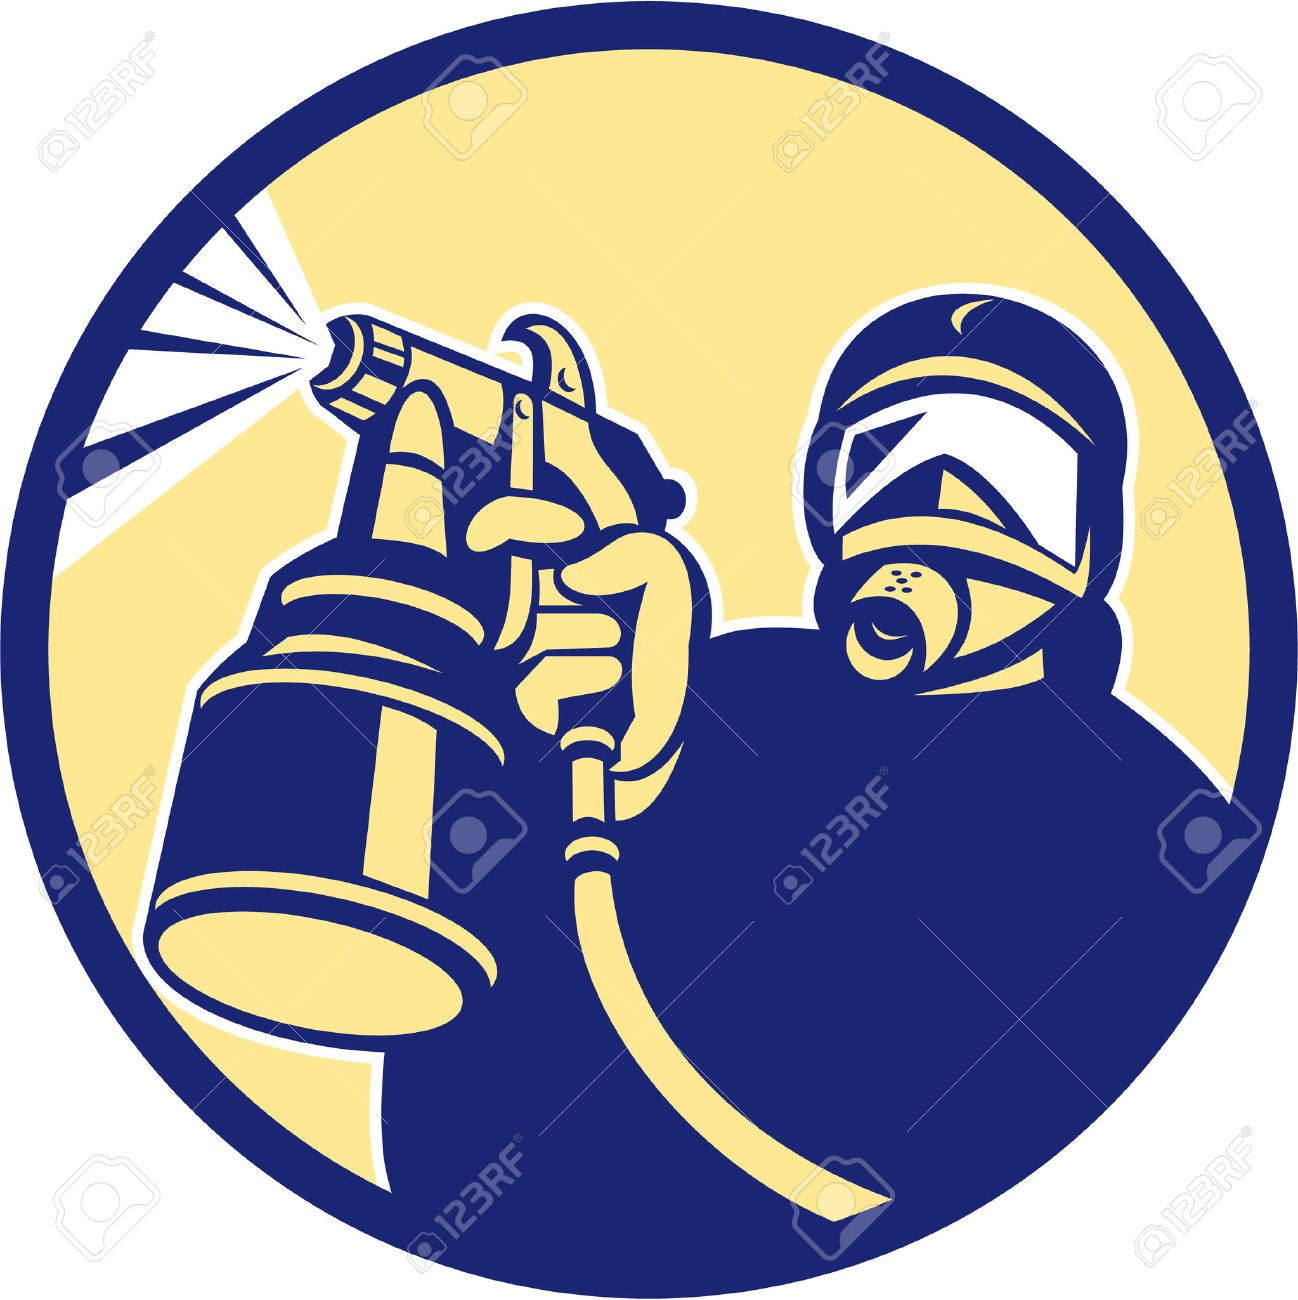 Illustration of car painter holding paint spray gun spraying set inside circle done in retro style. Stock Vector - 26131778